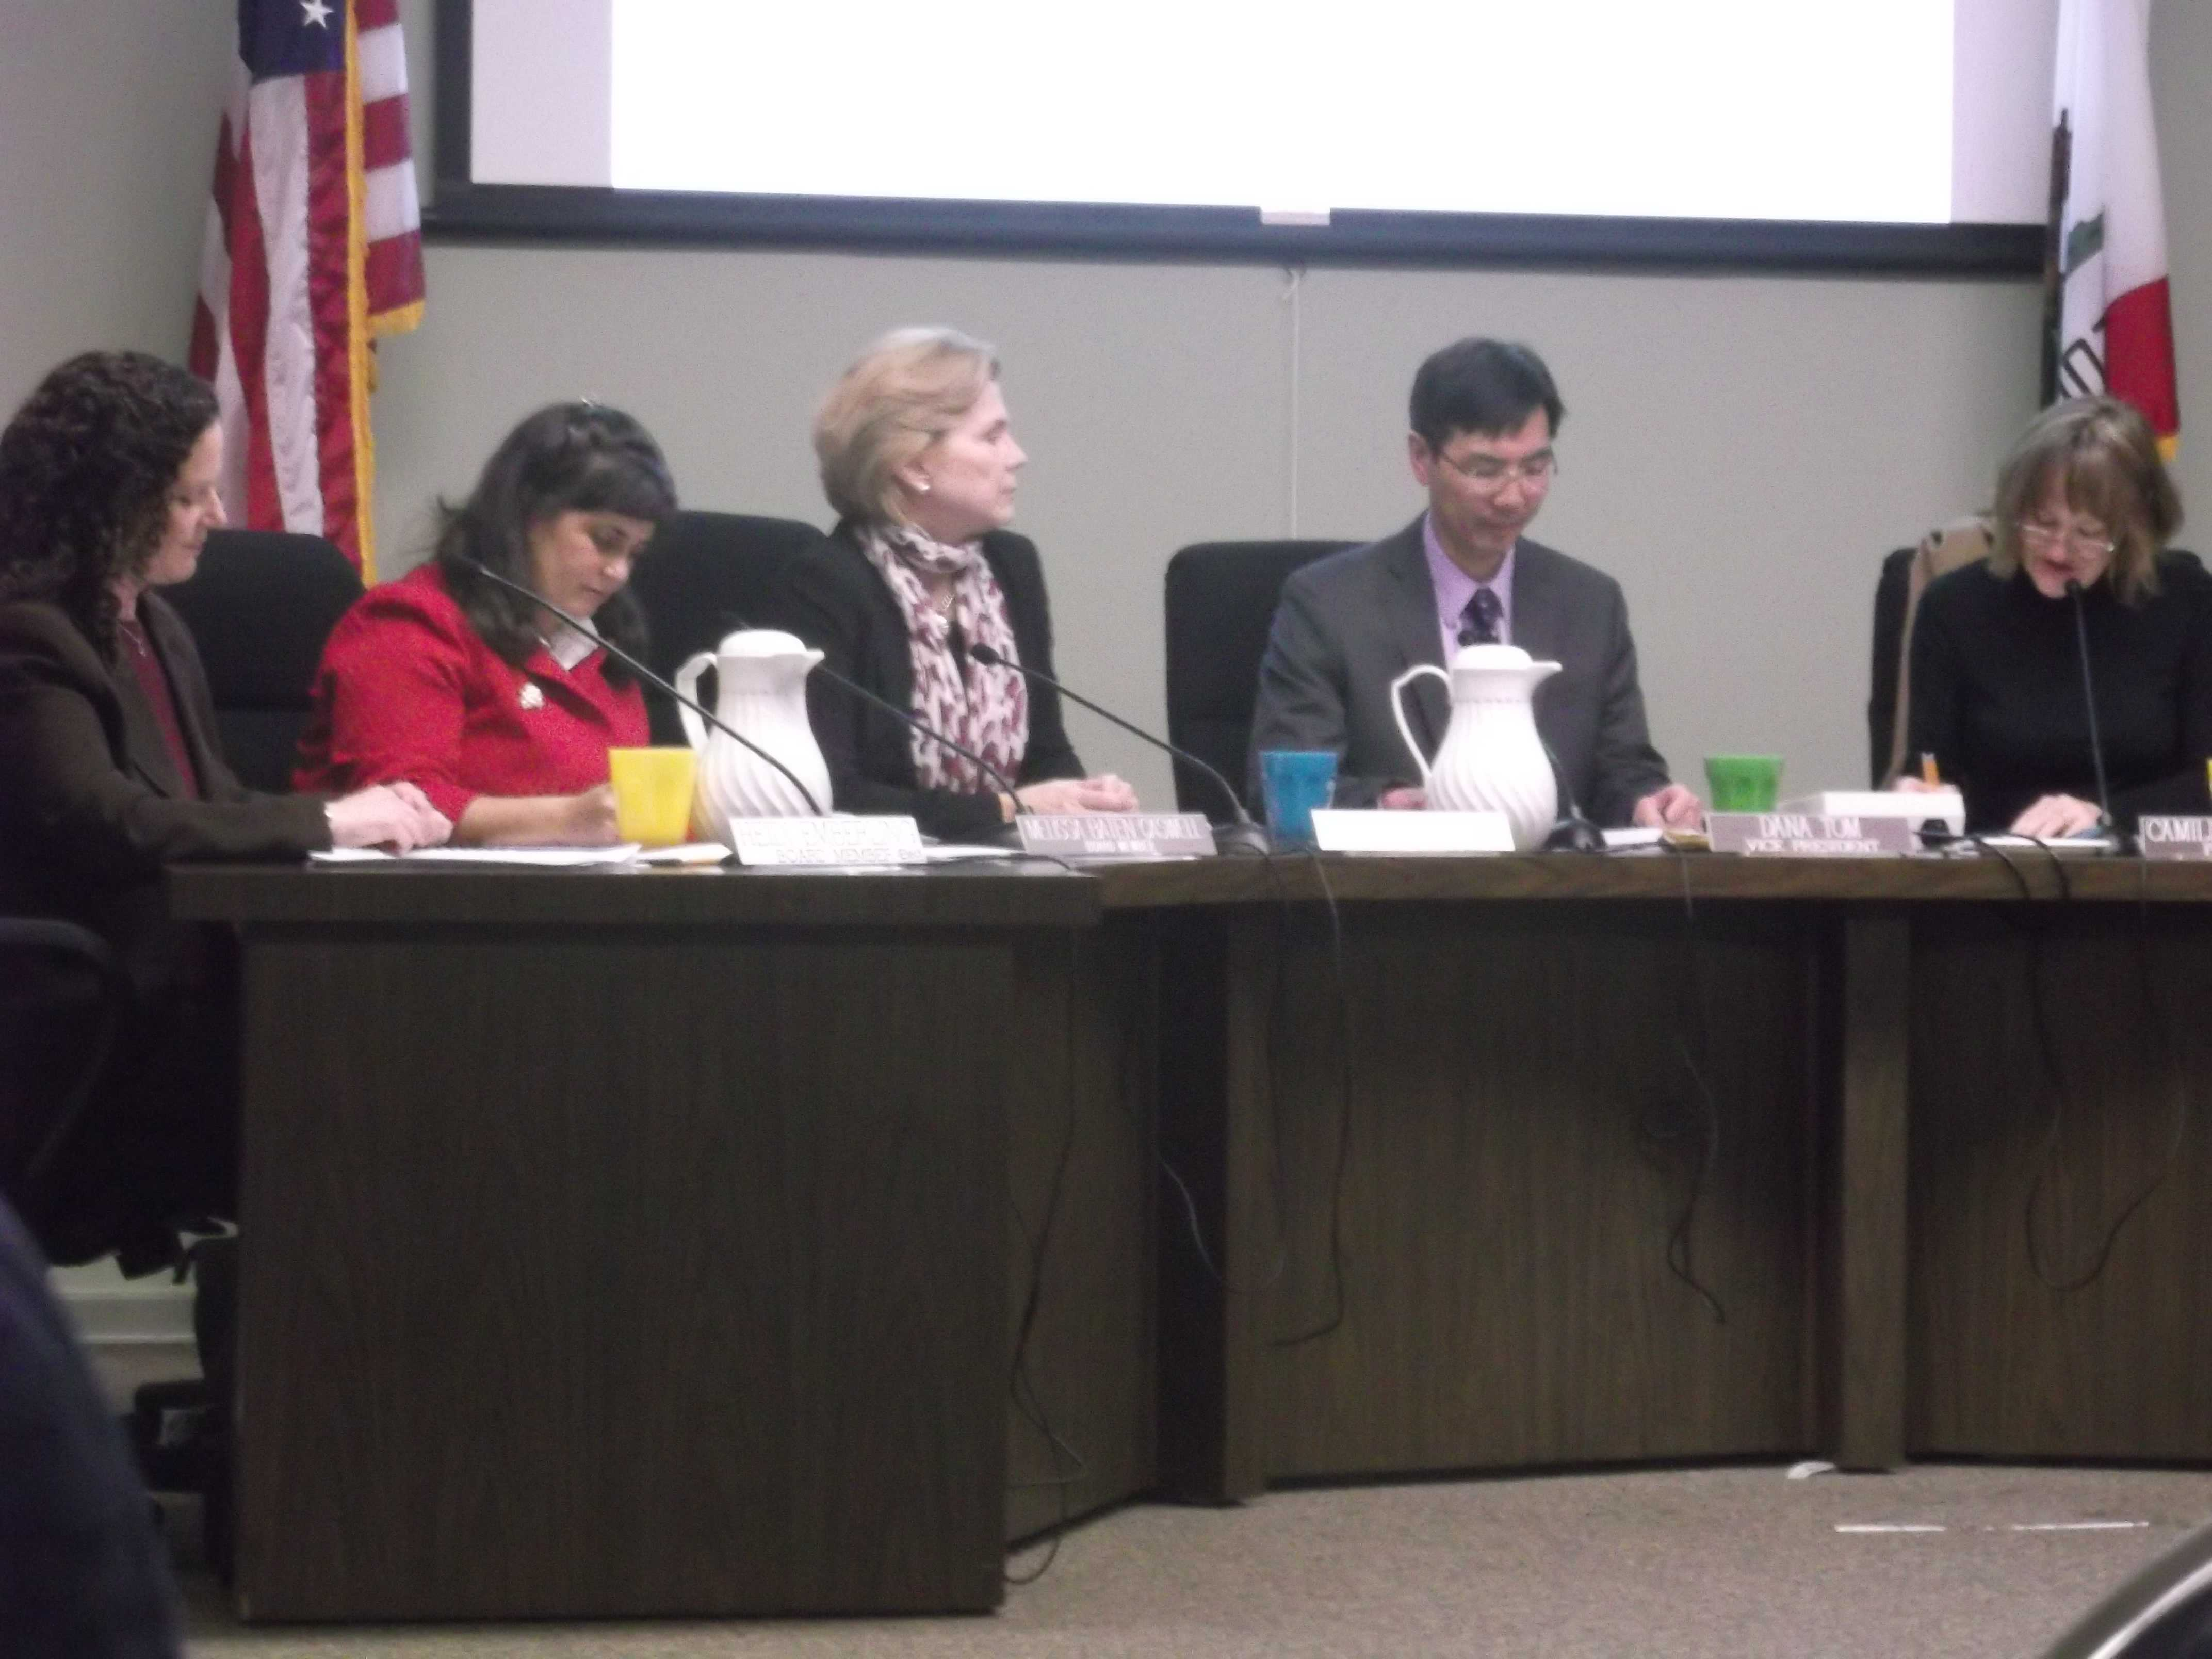 School board members discuss the new strategic plan. [Photo by David Raftrey]